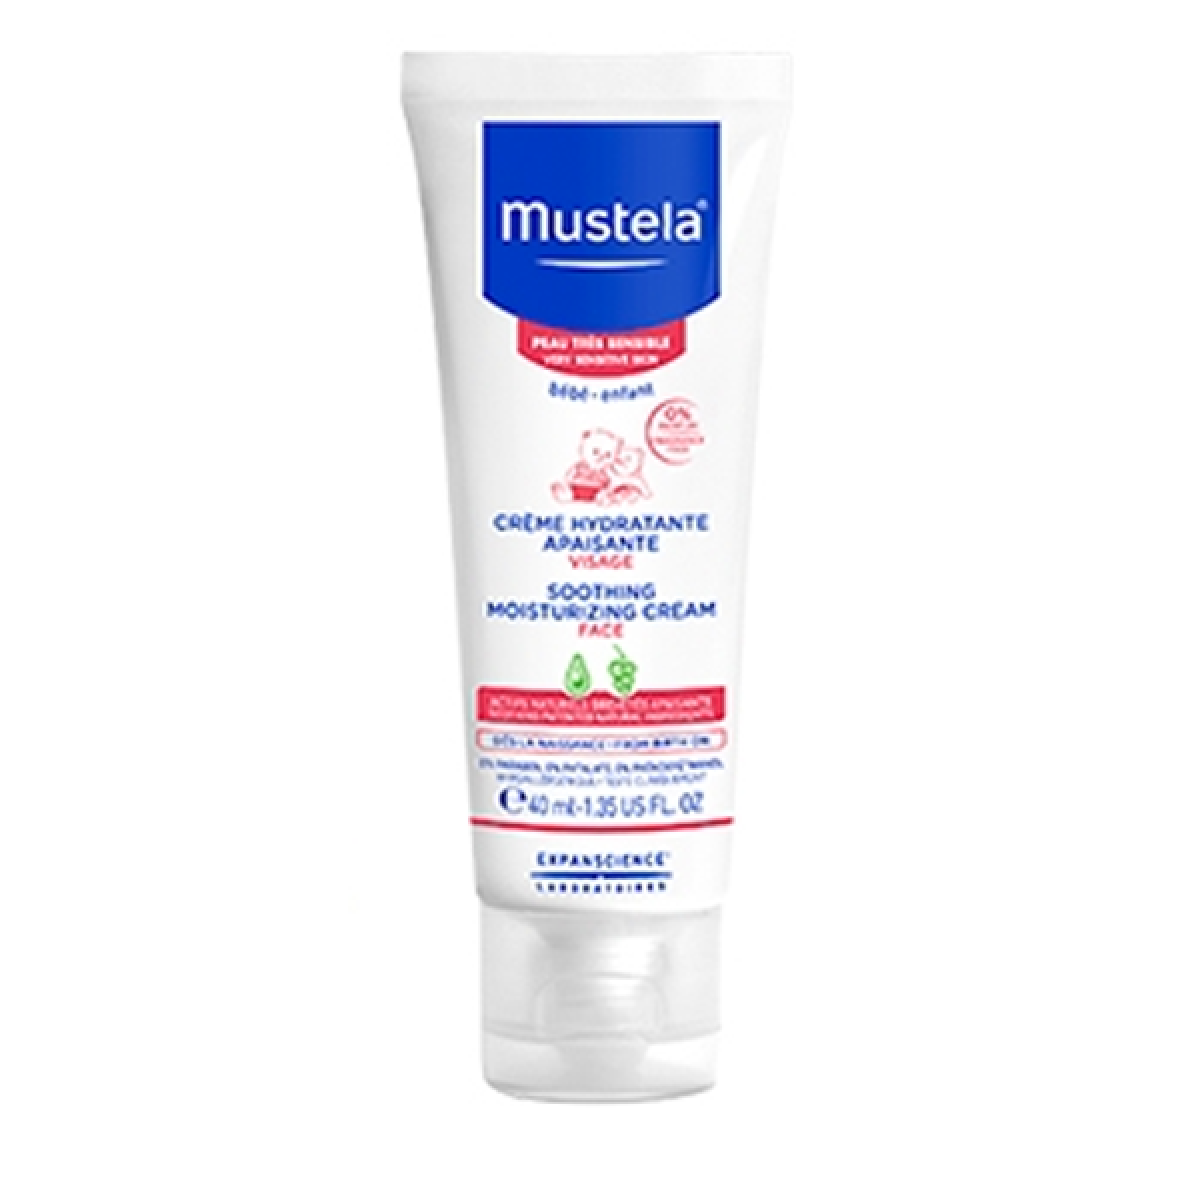 mustela b b cr me hydratante apaisante peau tr s sensible 40ml parapharmacie pharmarket. Black Bedroom Furniture Sets. Home Design Ideas